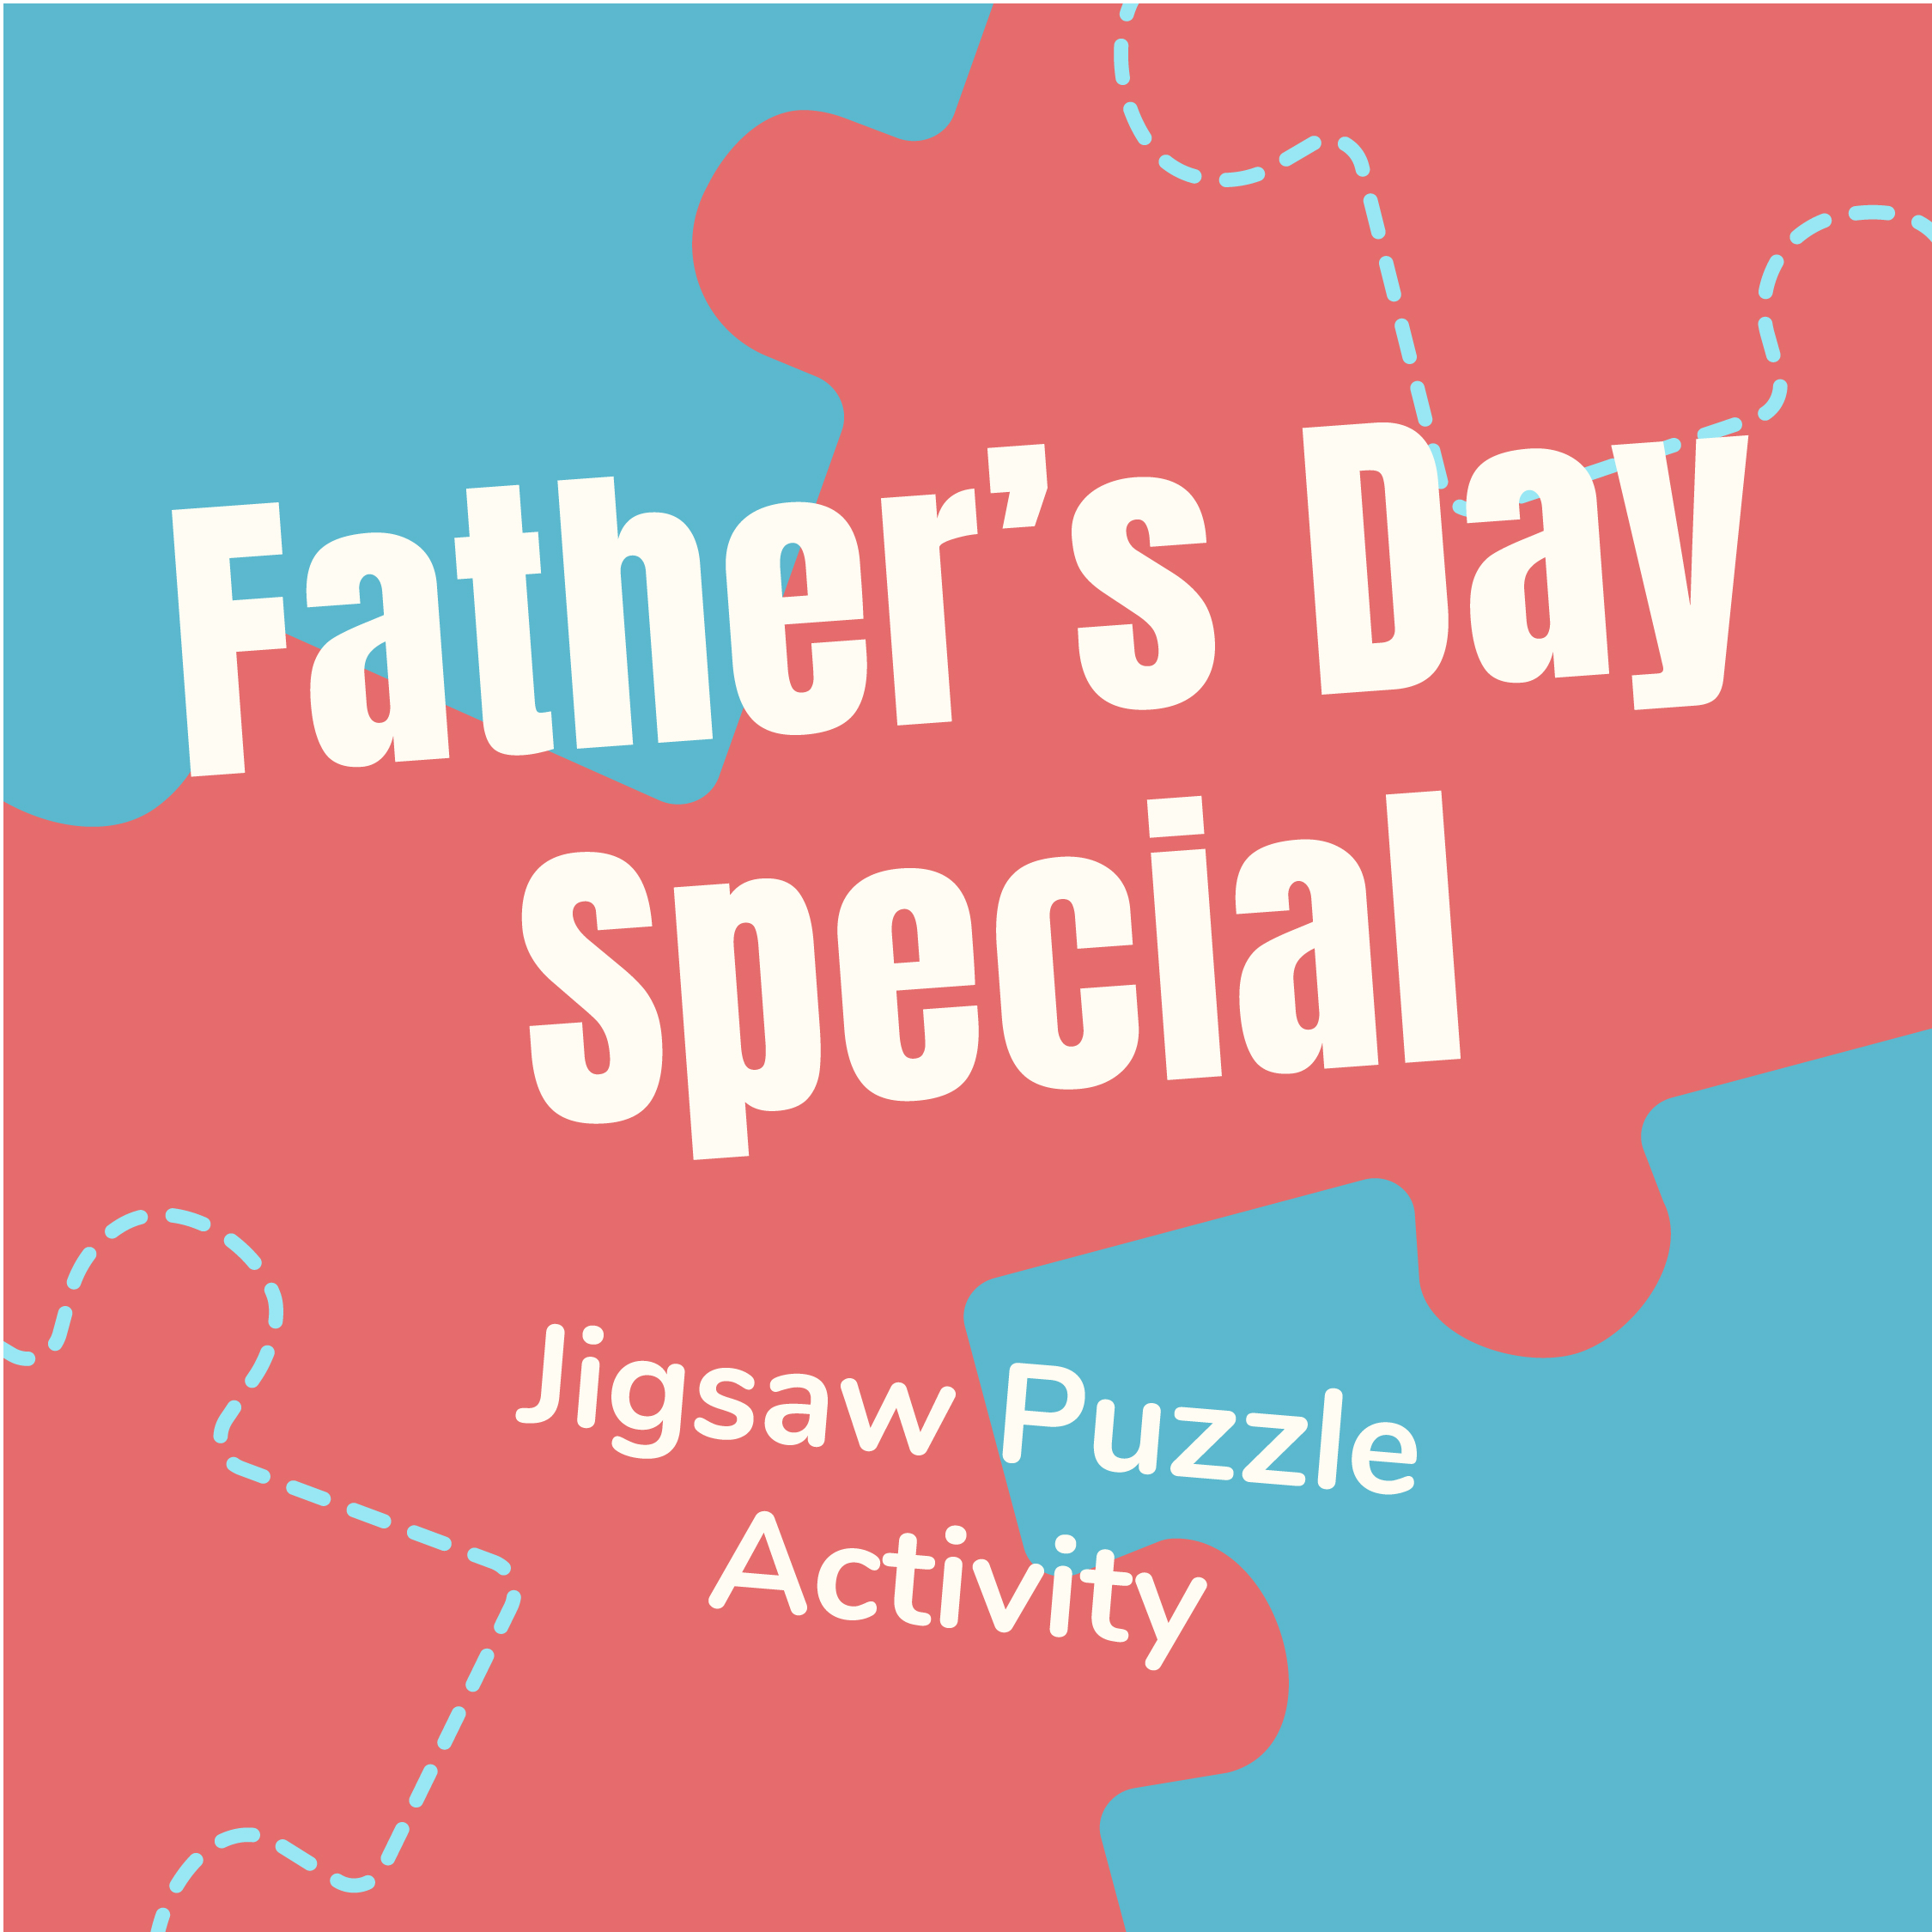 Father's Day Jigsaw Puzzle Activity